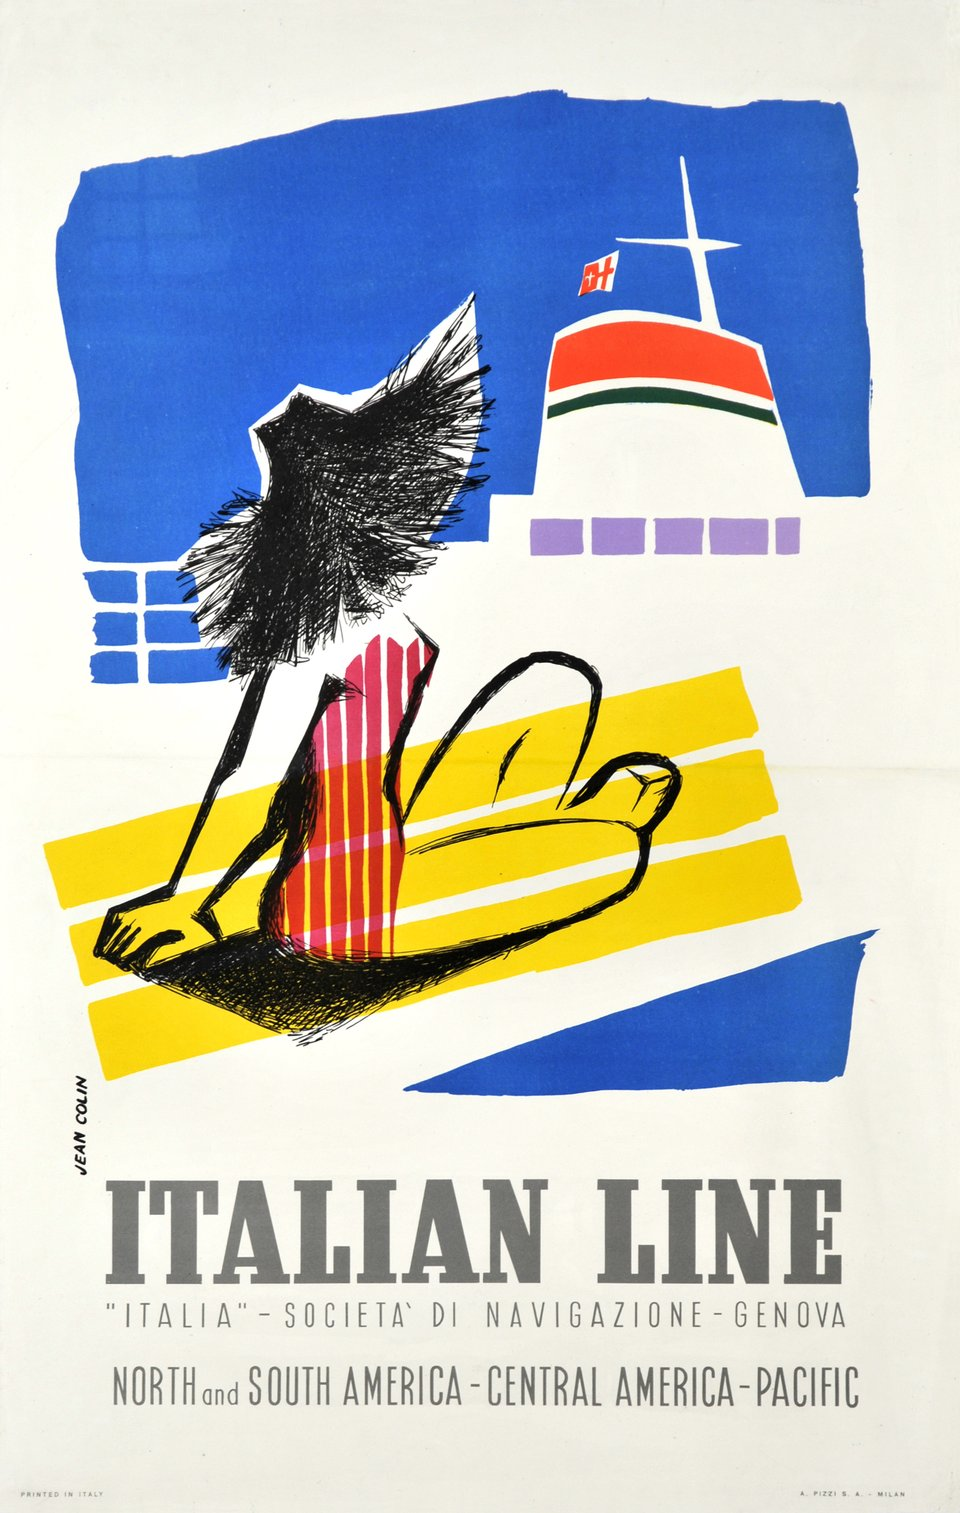 Italian Line, North and South America - Central America - Pacific – Affiche ancienne – Jean COLIN – 1950